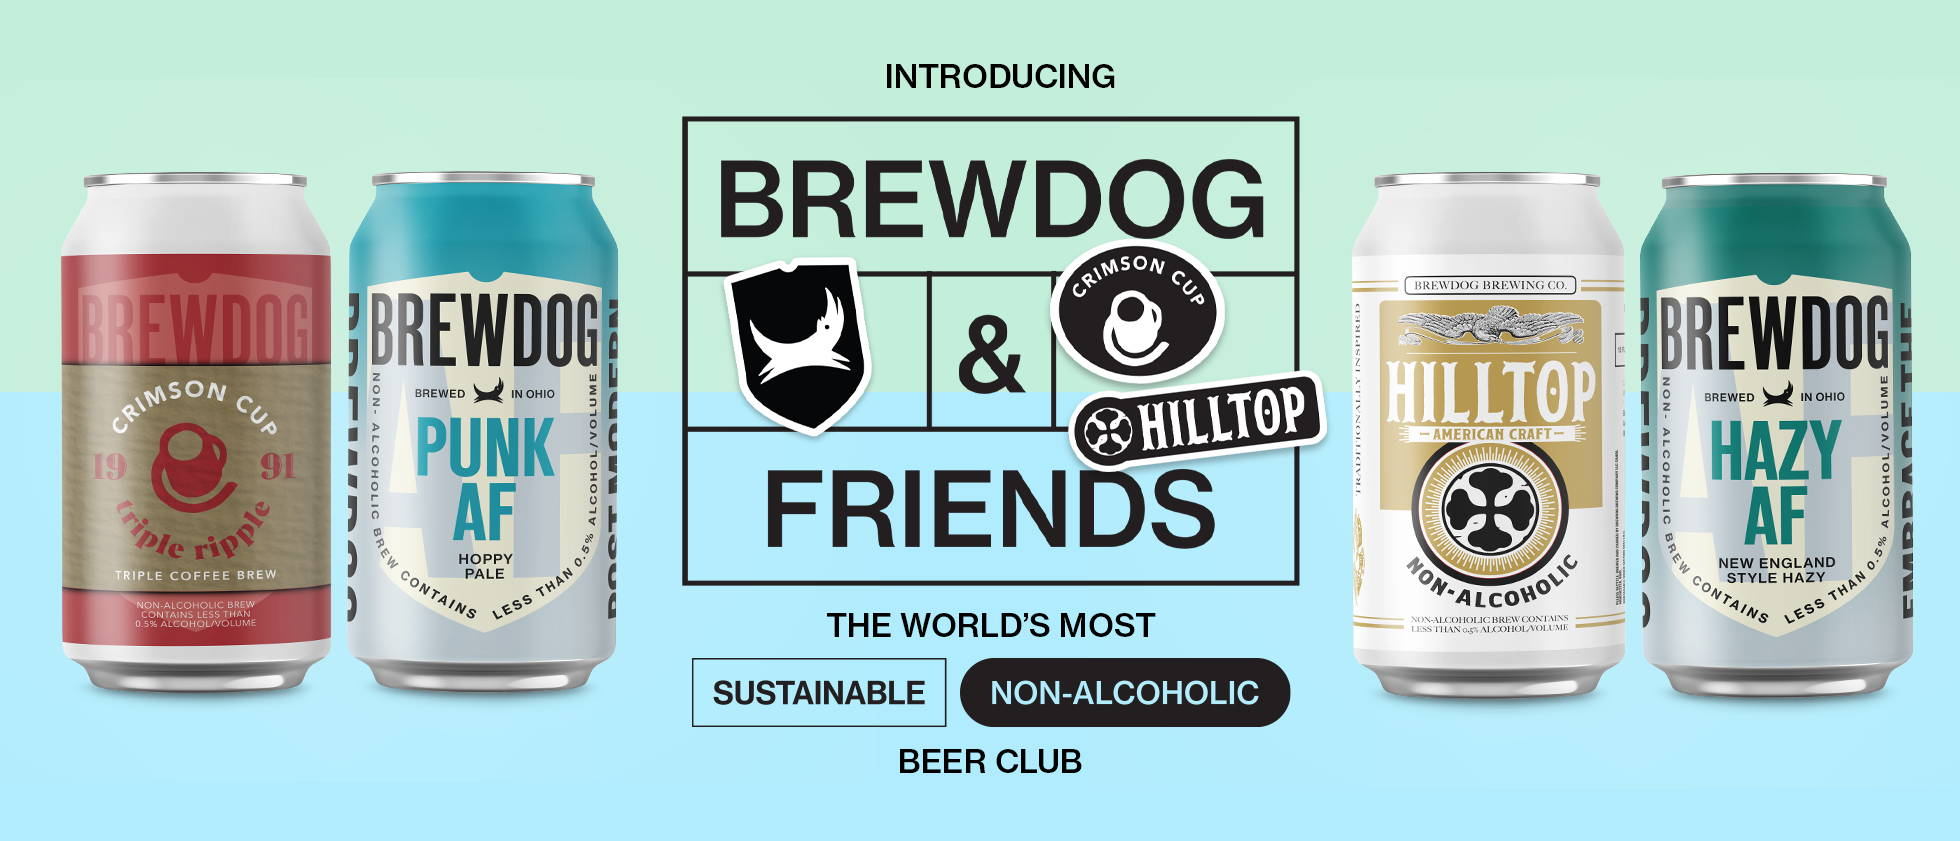 Introducing BrewDog & Friends. The world's most sustainable non-alcoholic beer club.